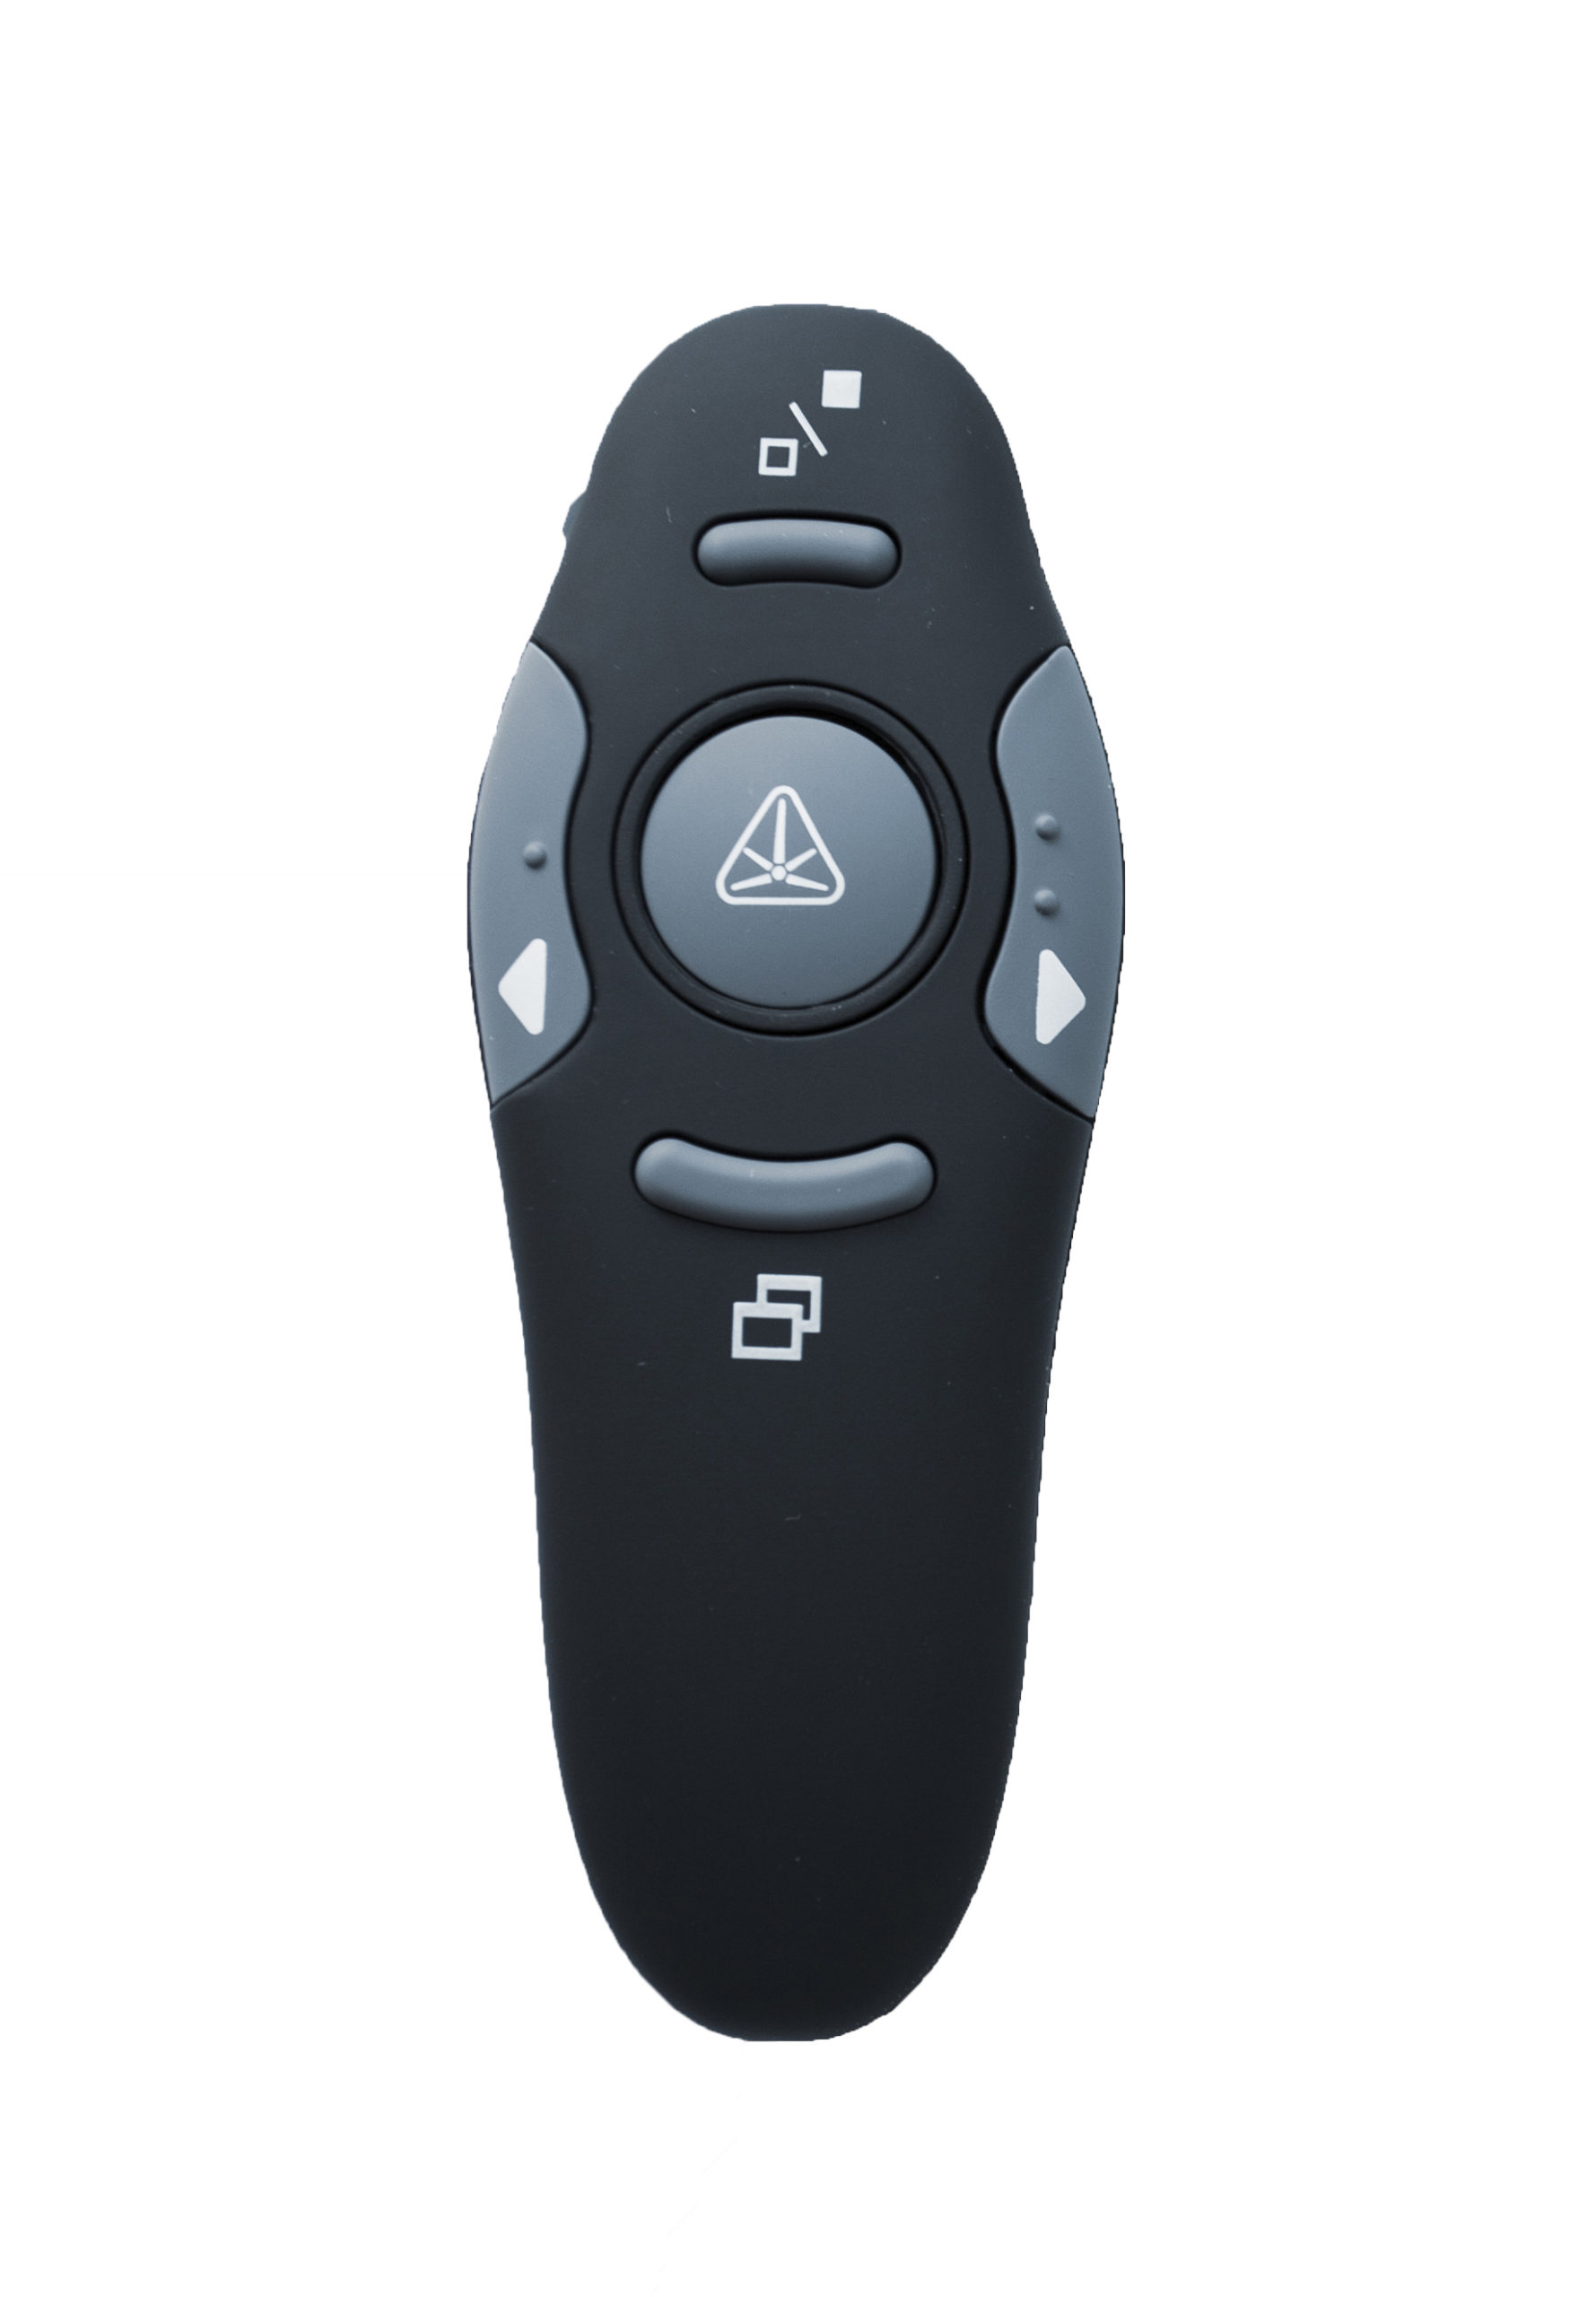 Presentation Pointer Red Laser Wireless Remote